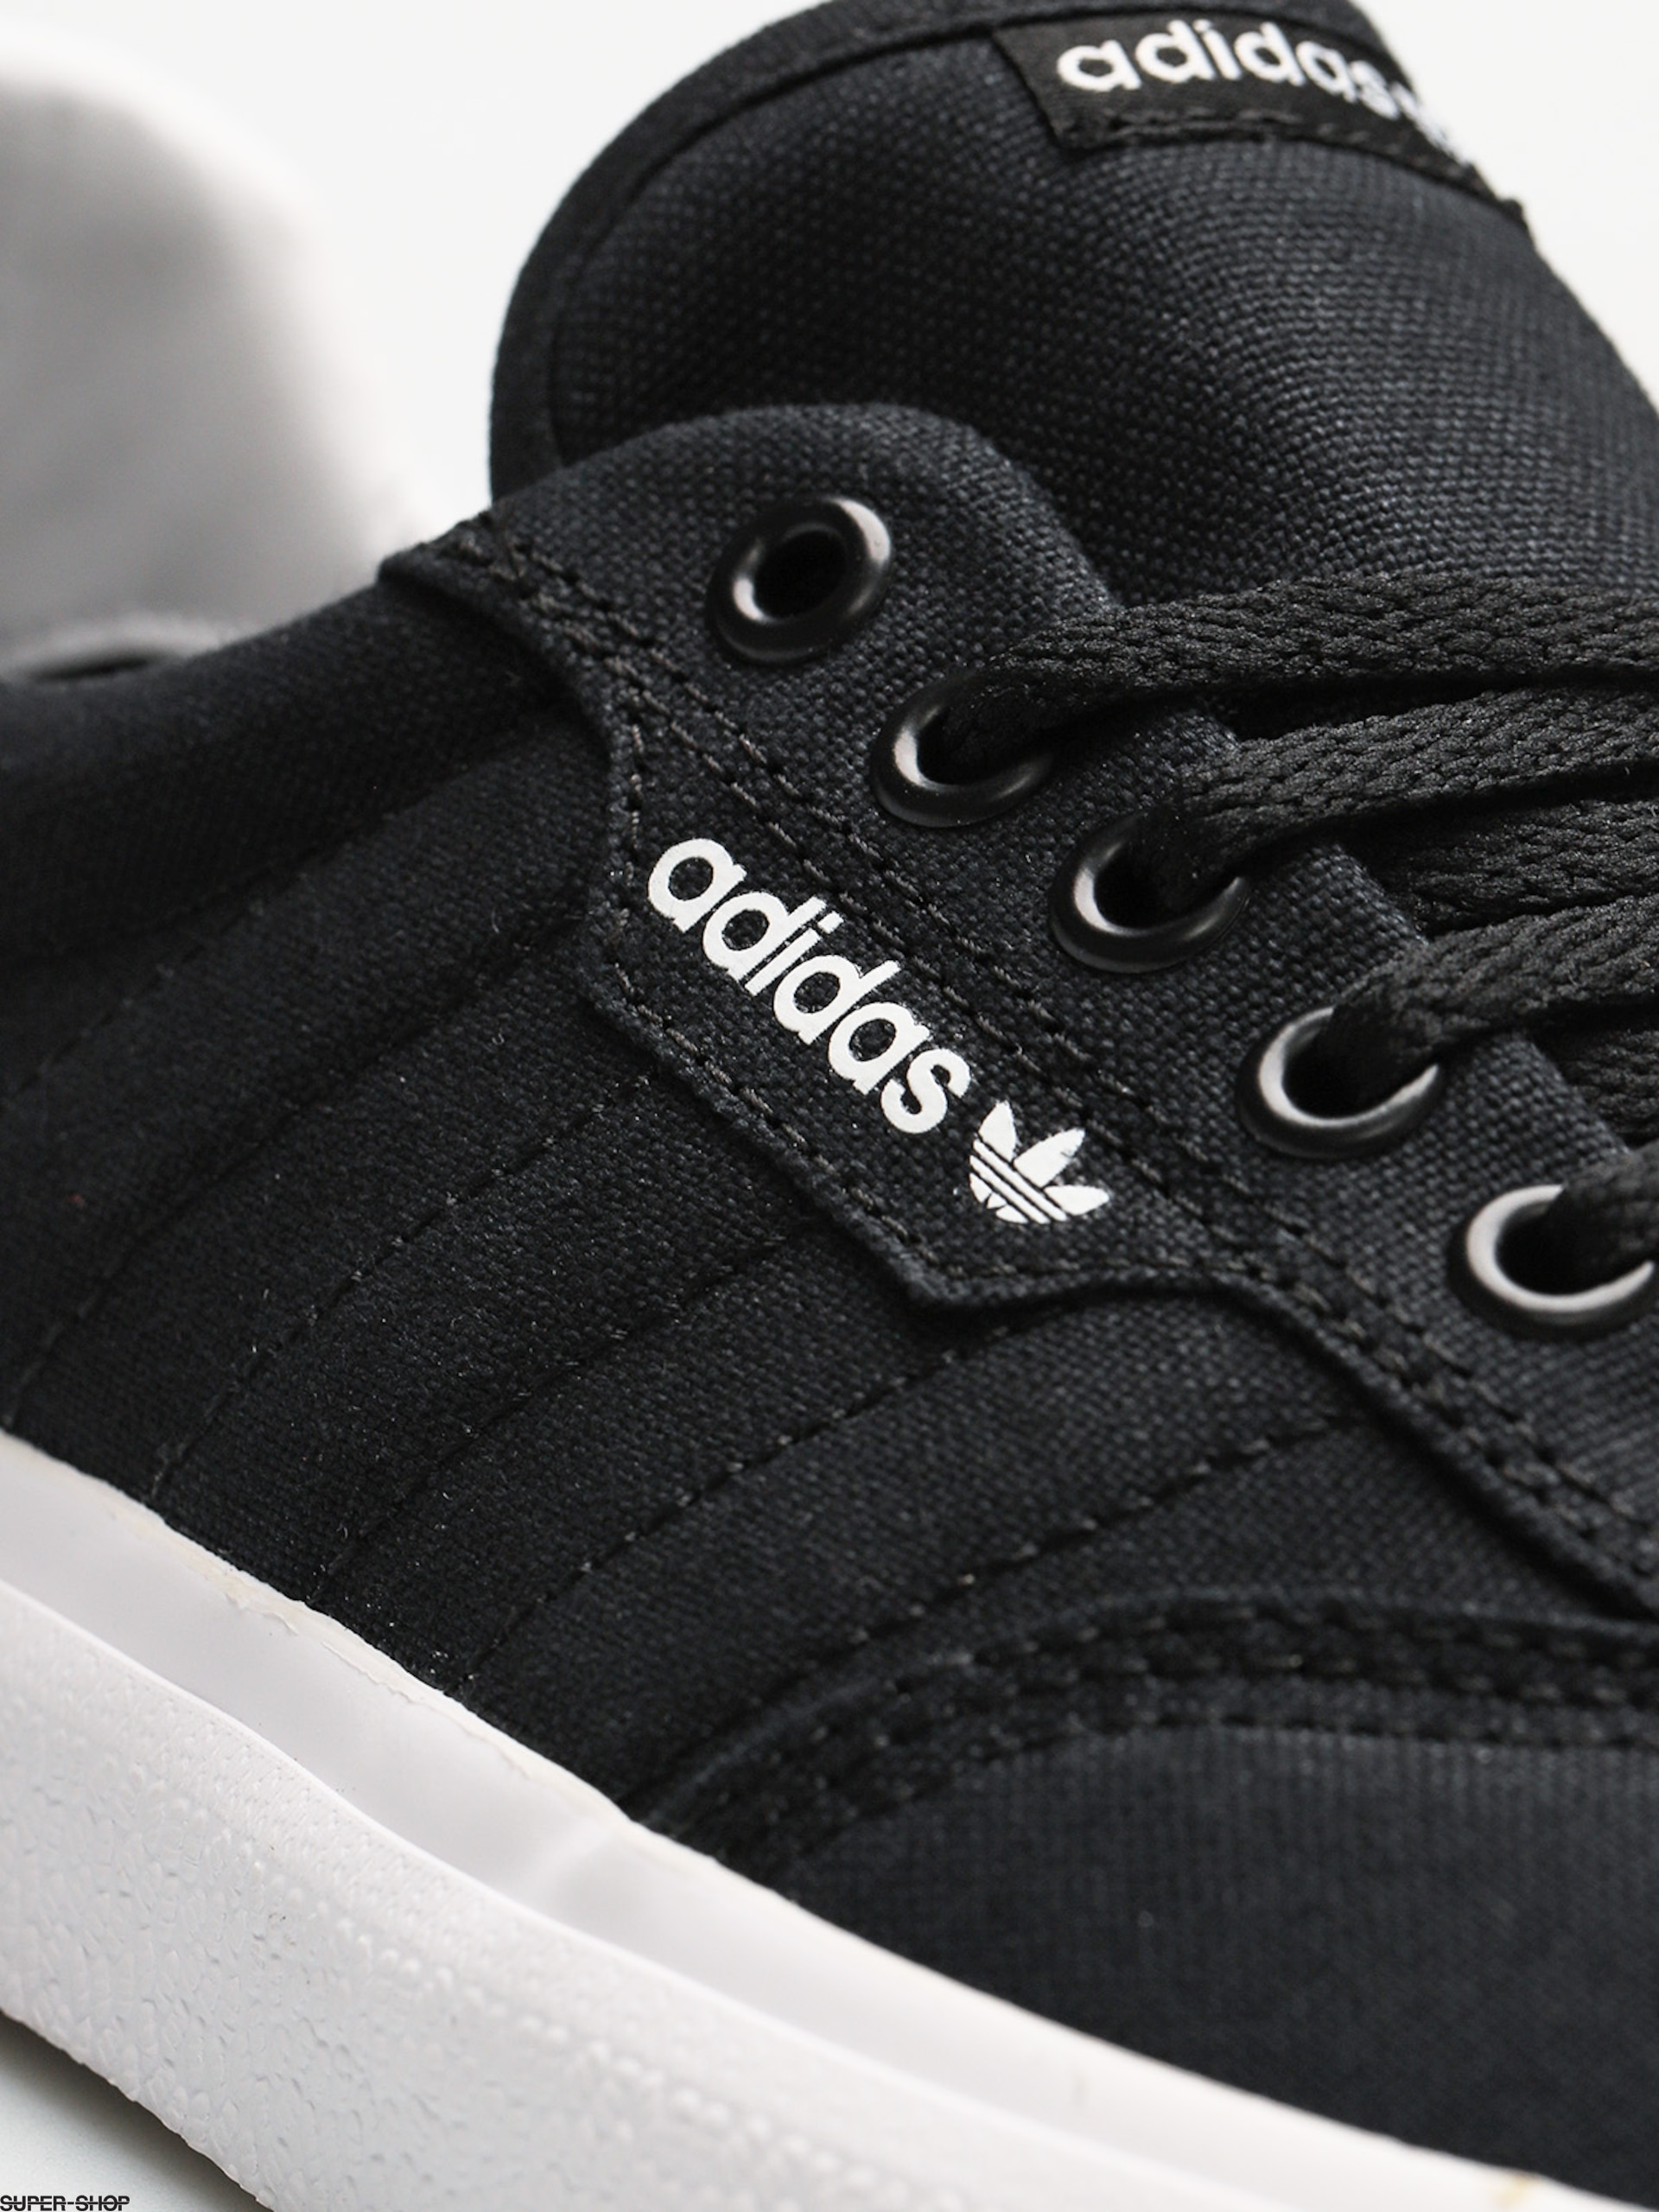 new arrival ce6c4 4aa8e adidas Shoes 3Mc (core black core black ftwr white)